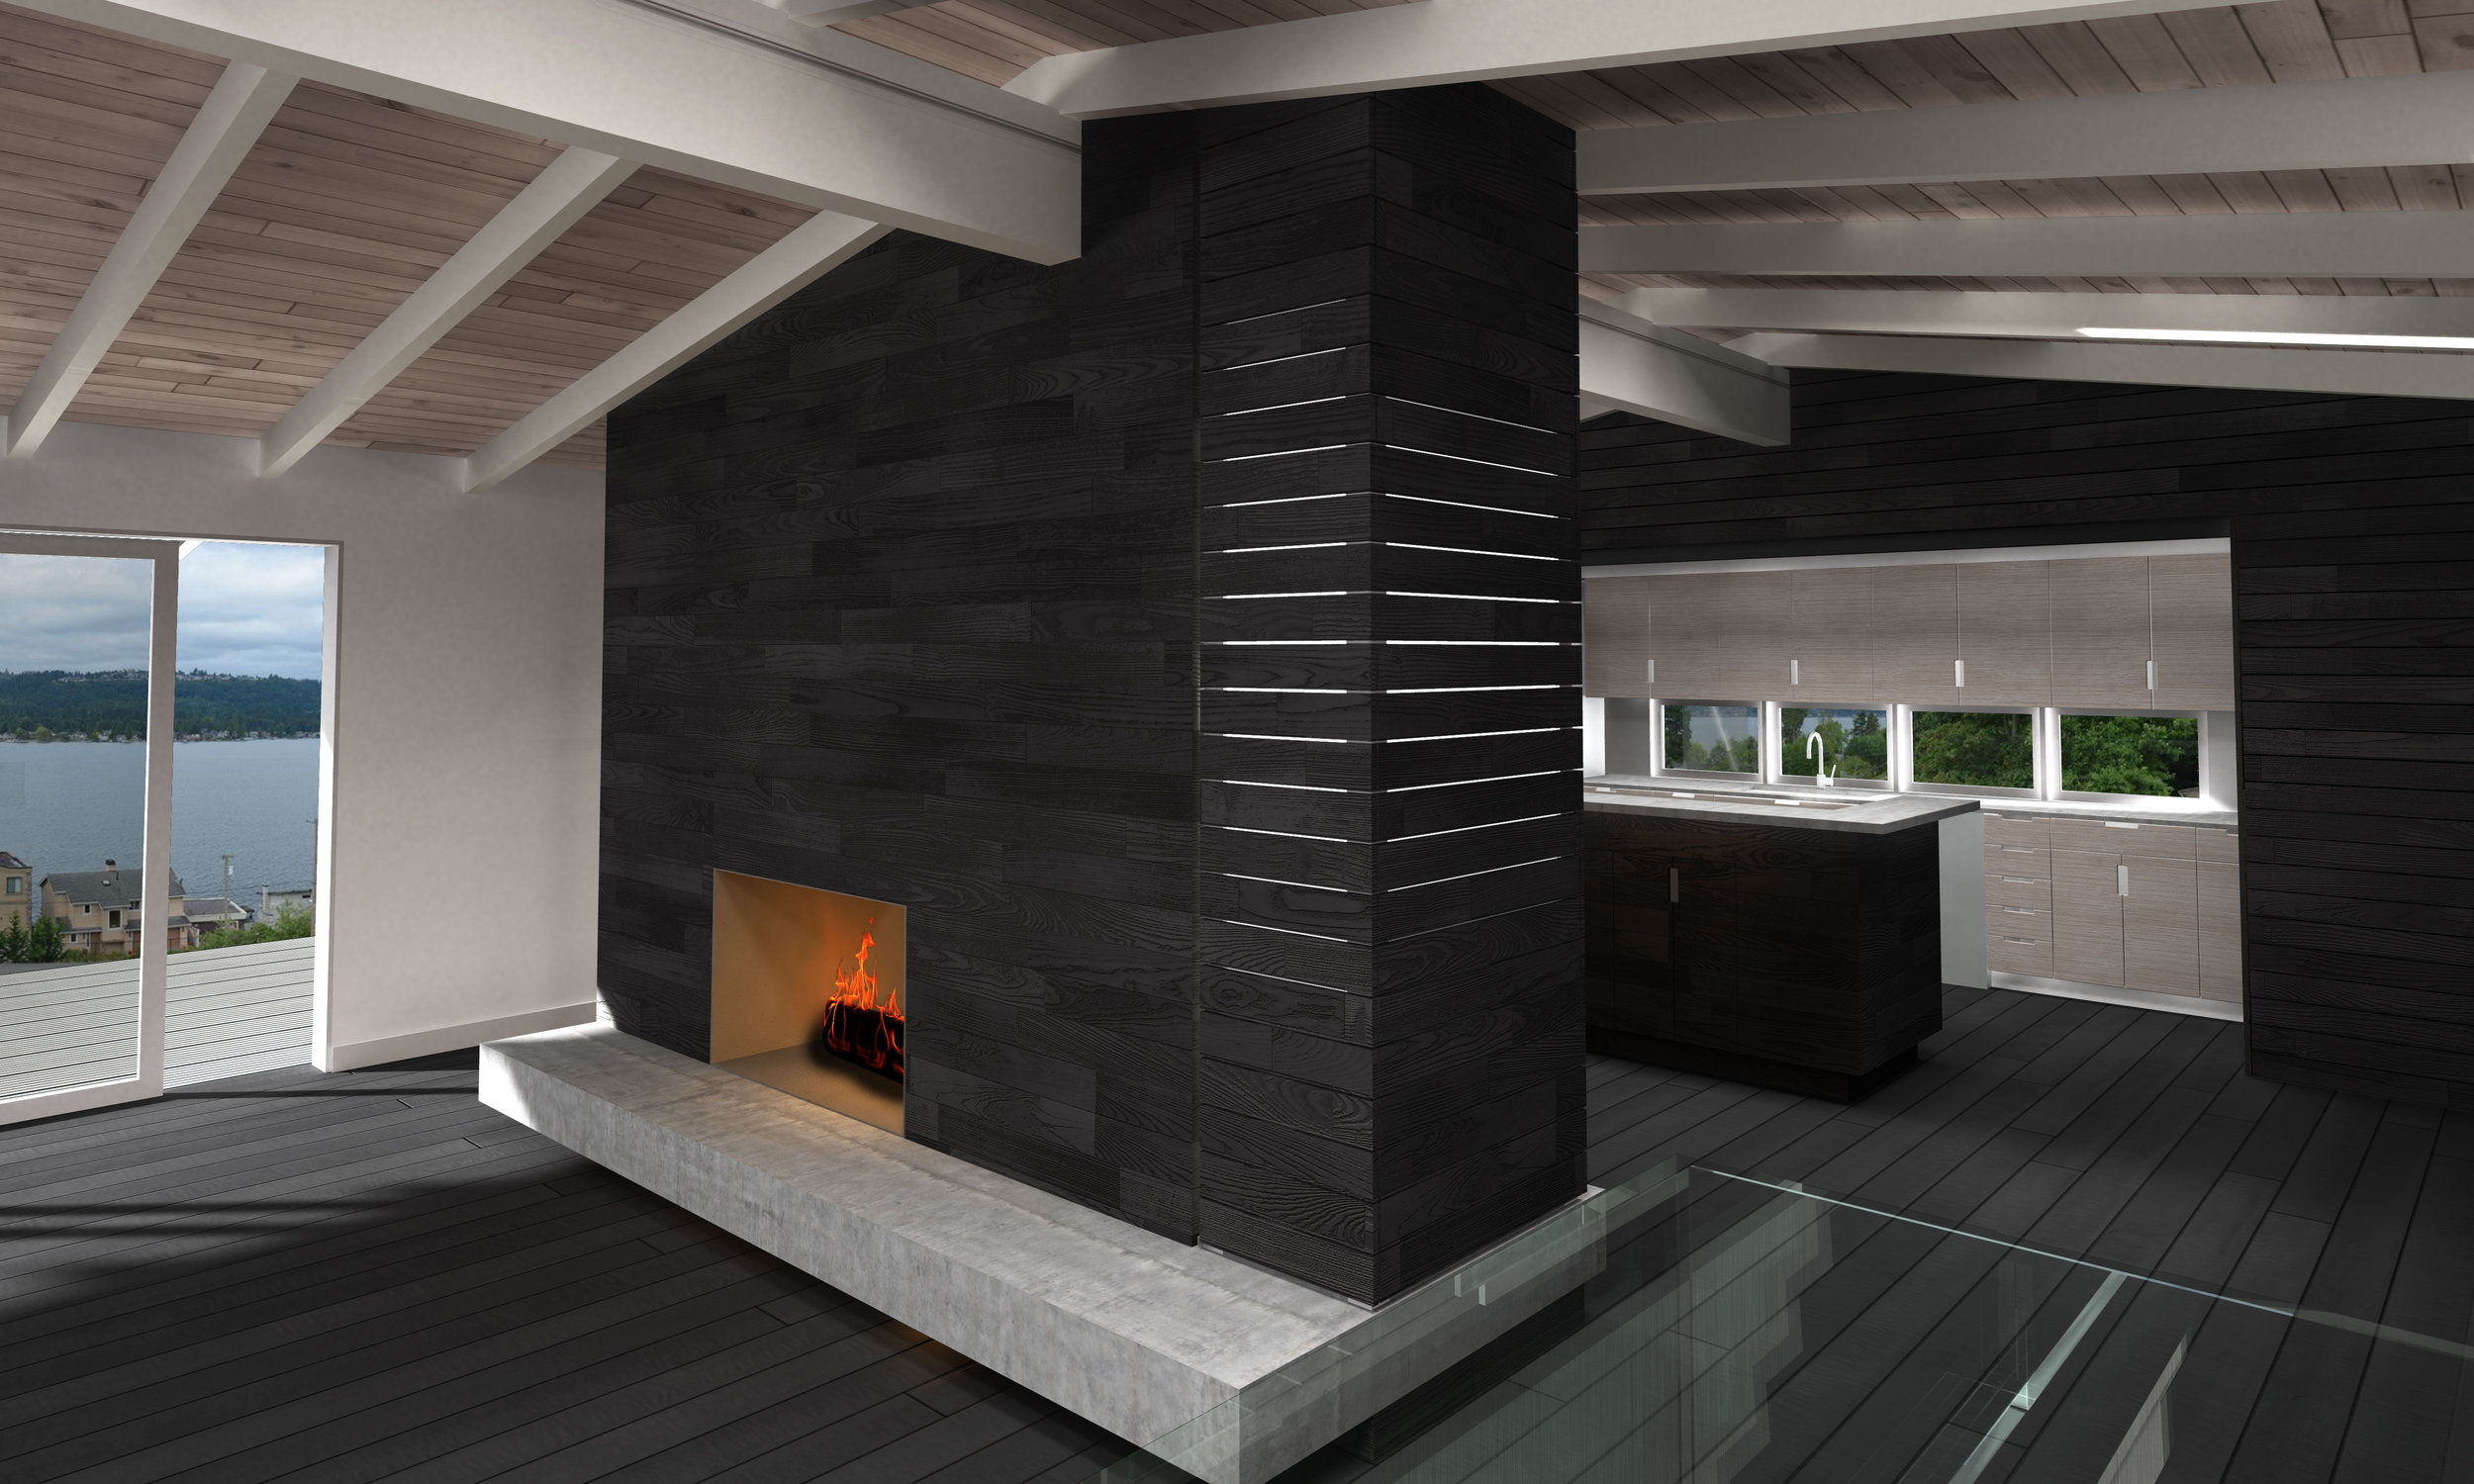 View of Fireplace and lightbox with Kitchen in background.